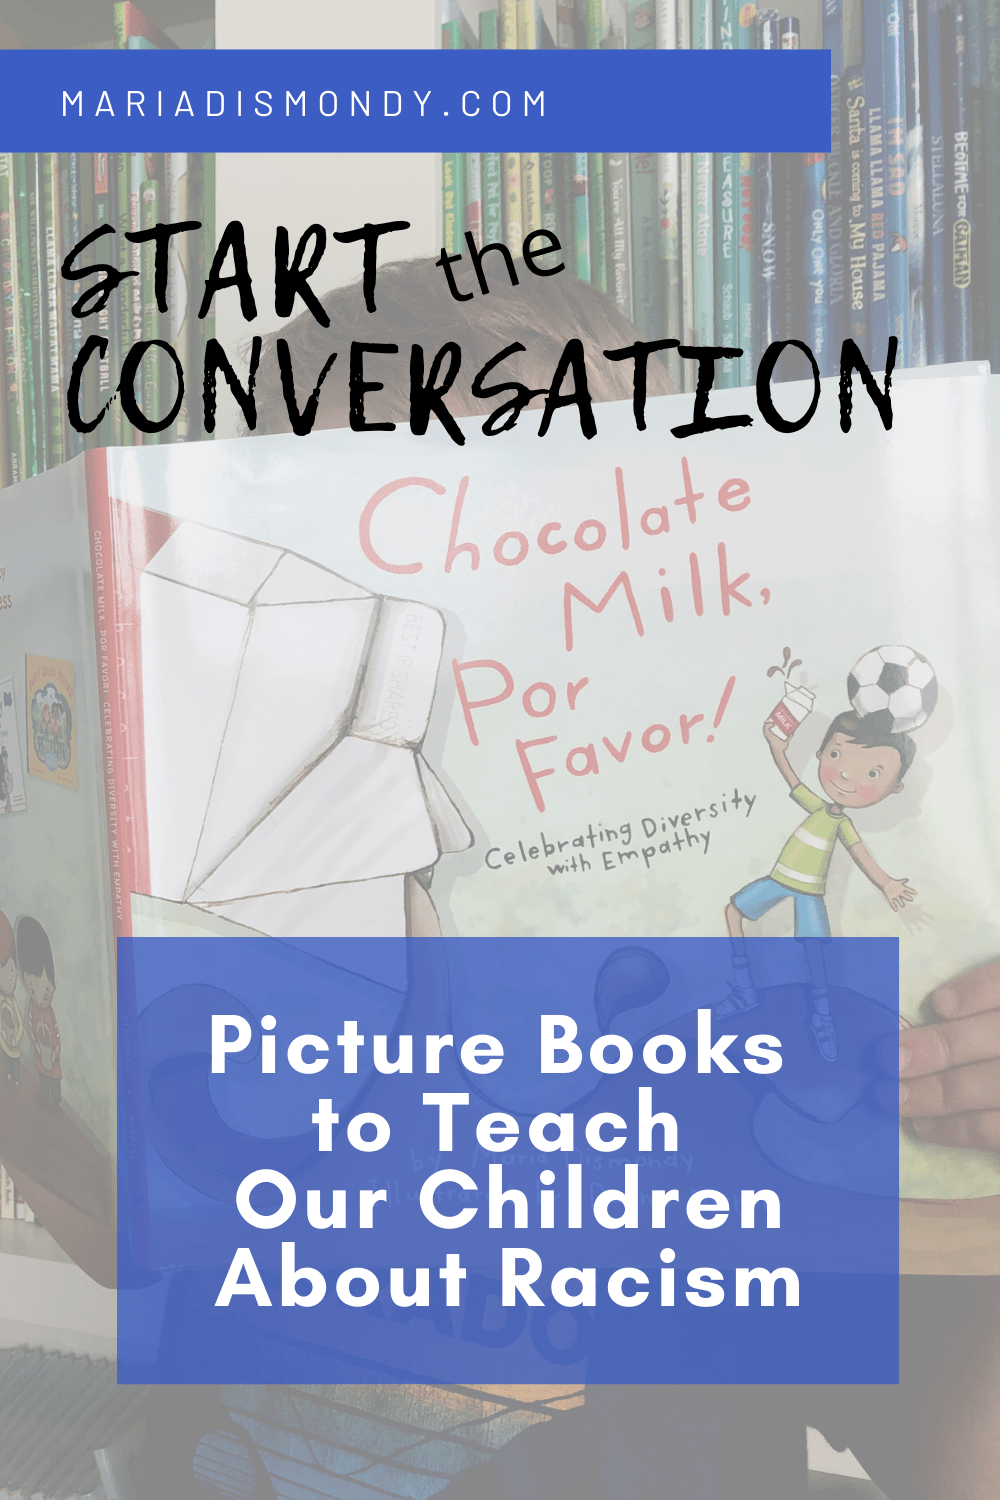 Children's Picture Books to Teach About Racism